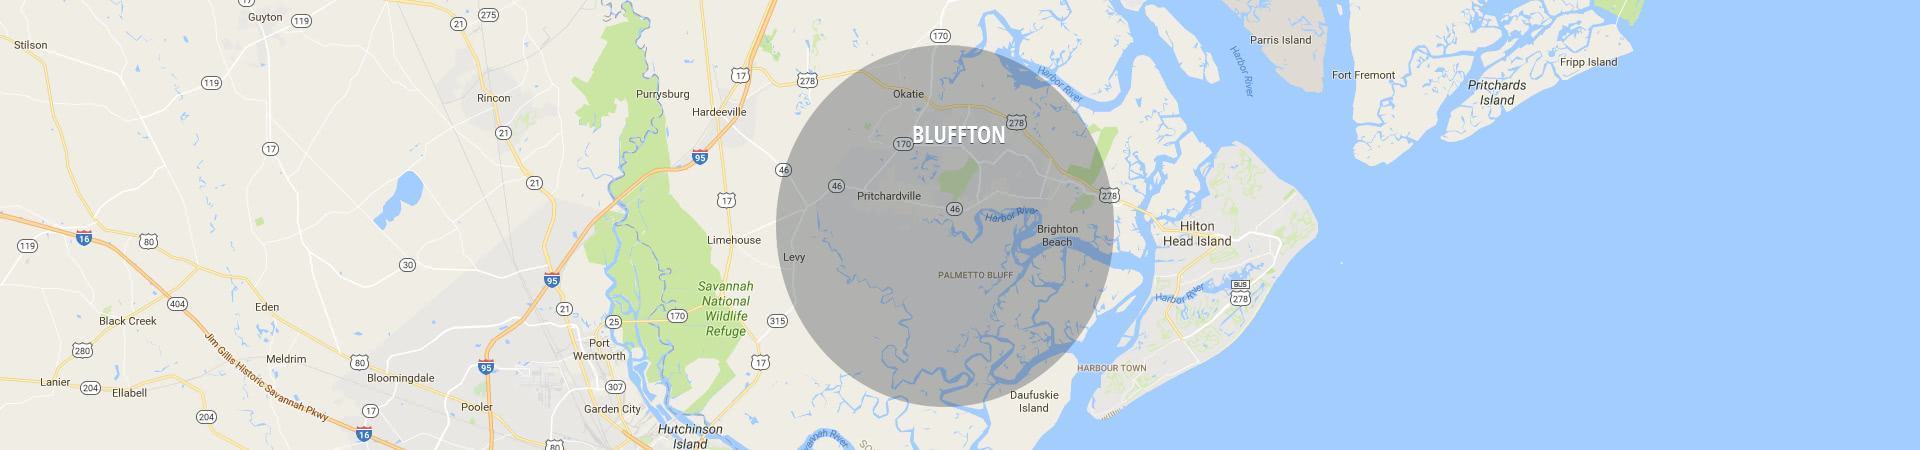 South Shore Bluffton Service area